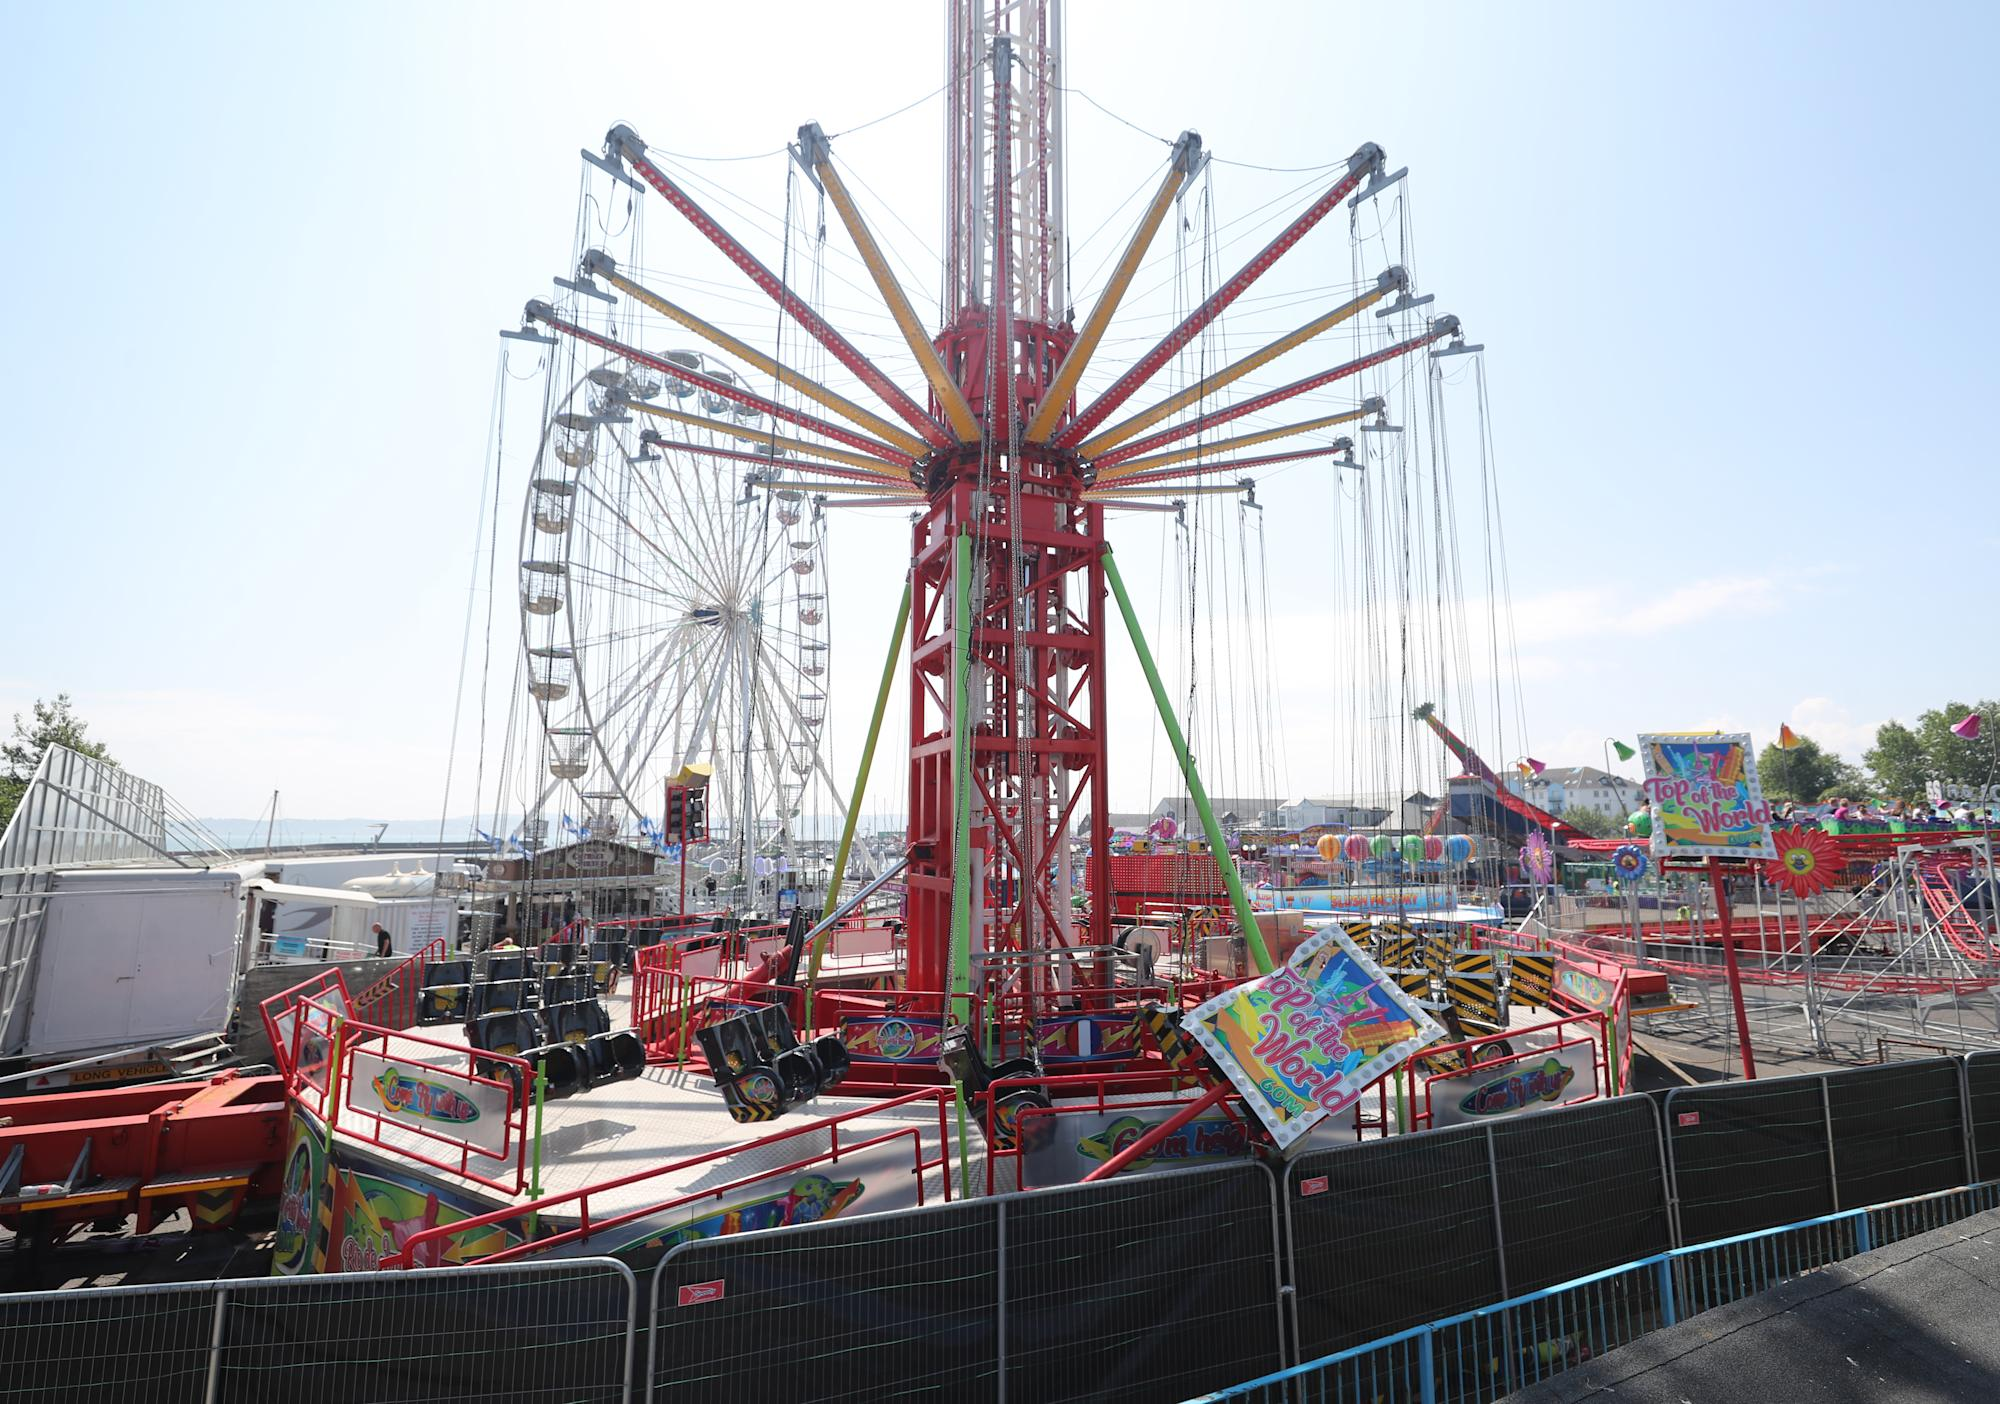 Funfair ride 'collapse' caused by 'misuse of equipment' by teens, organisers say